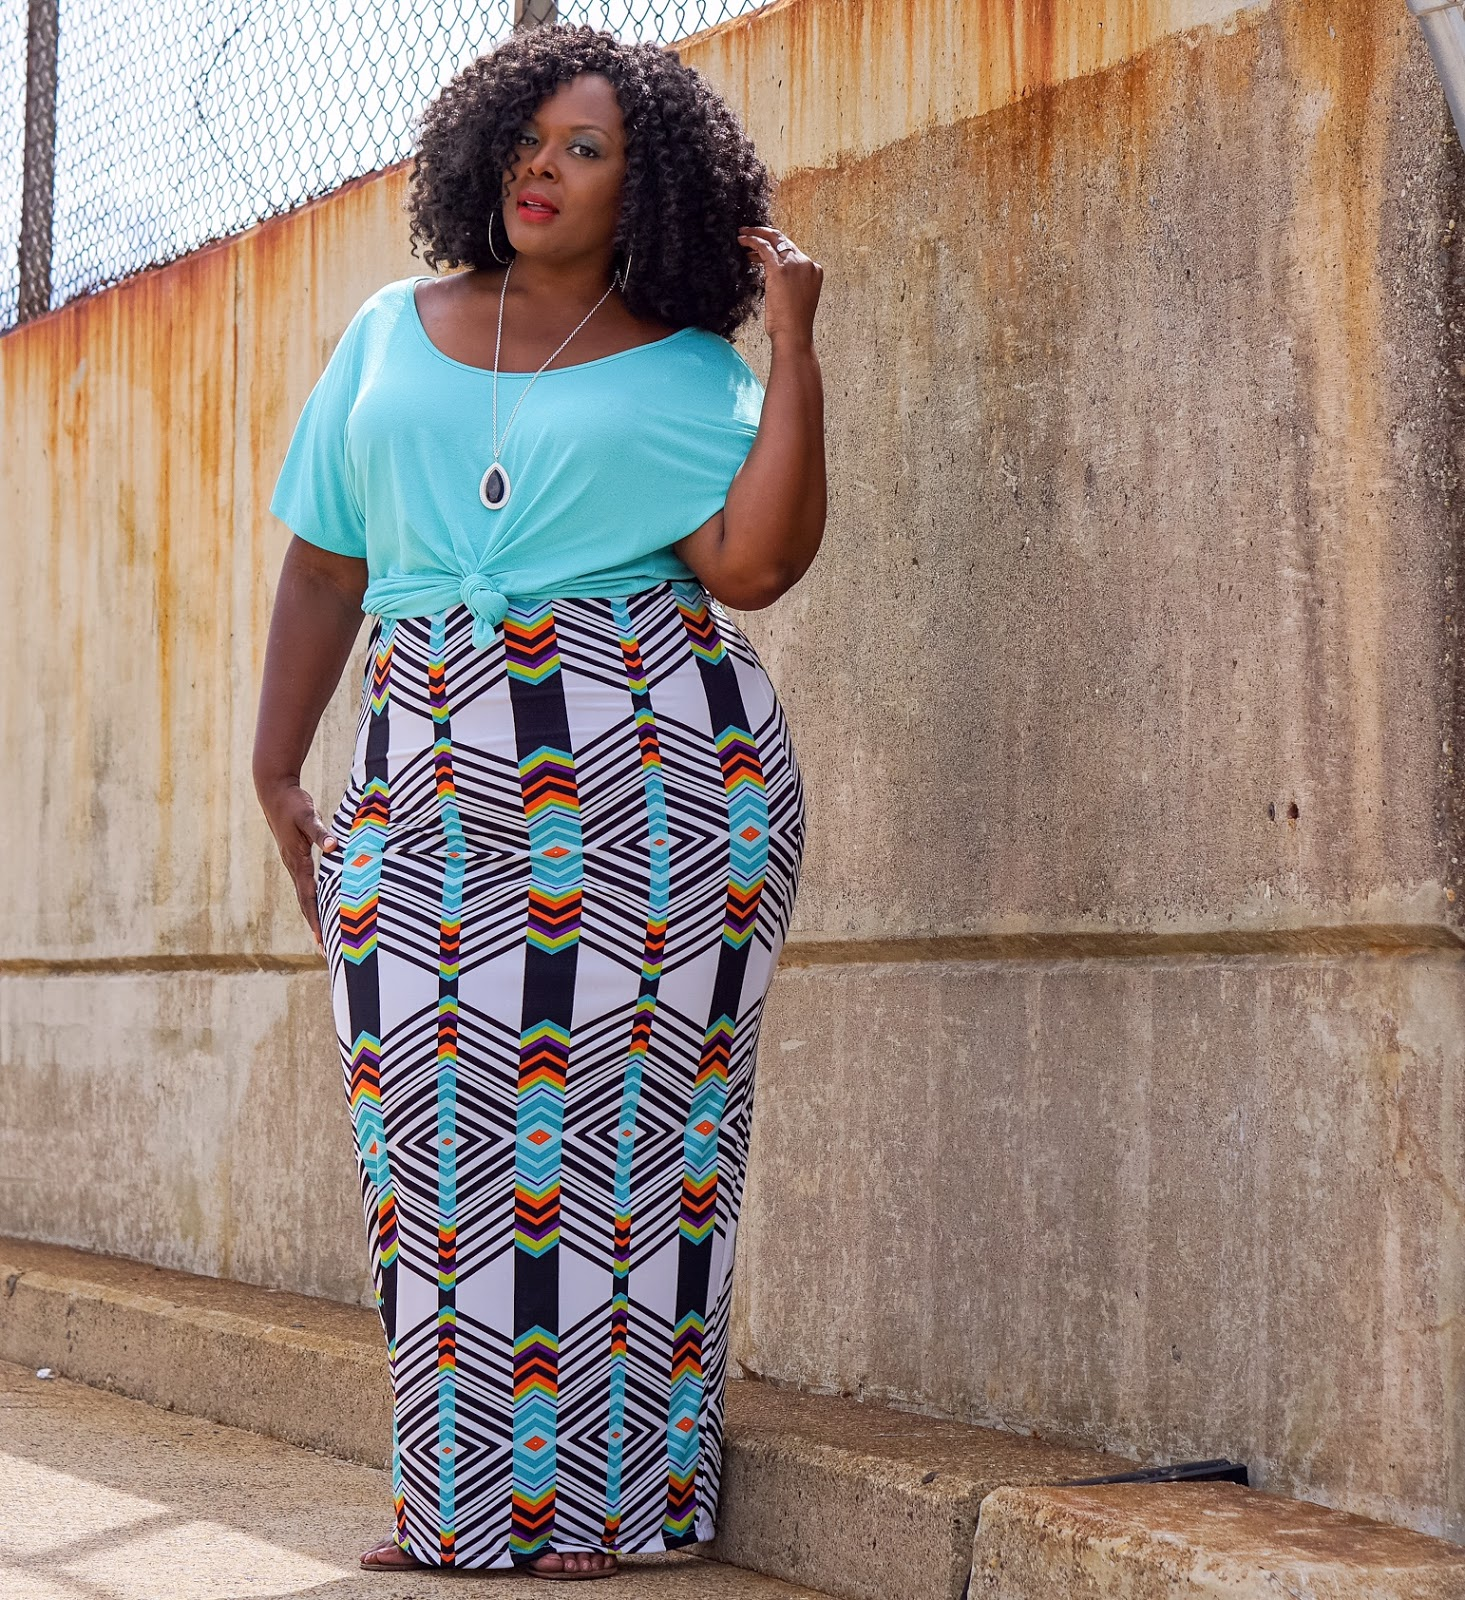 plus size skirts, plus size maxi skirt, maxiskirts, plus size skirts